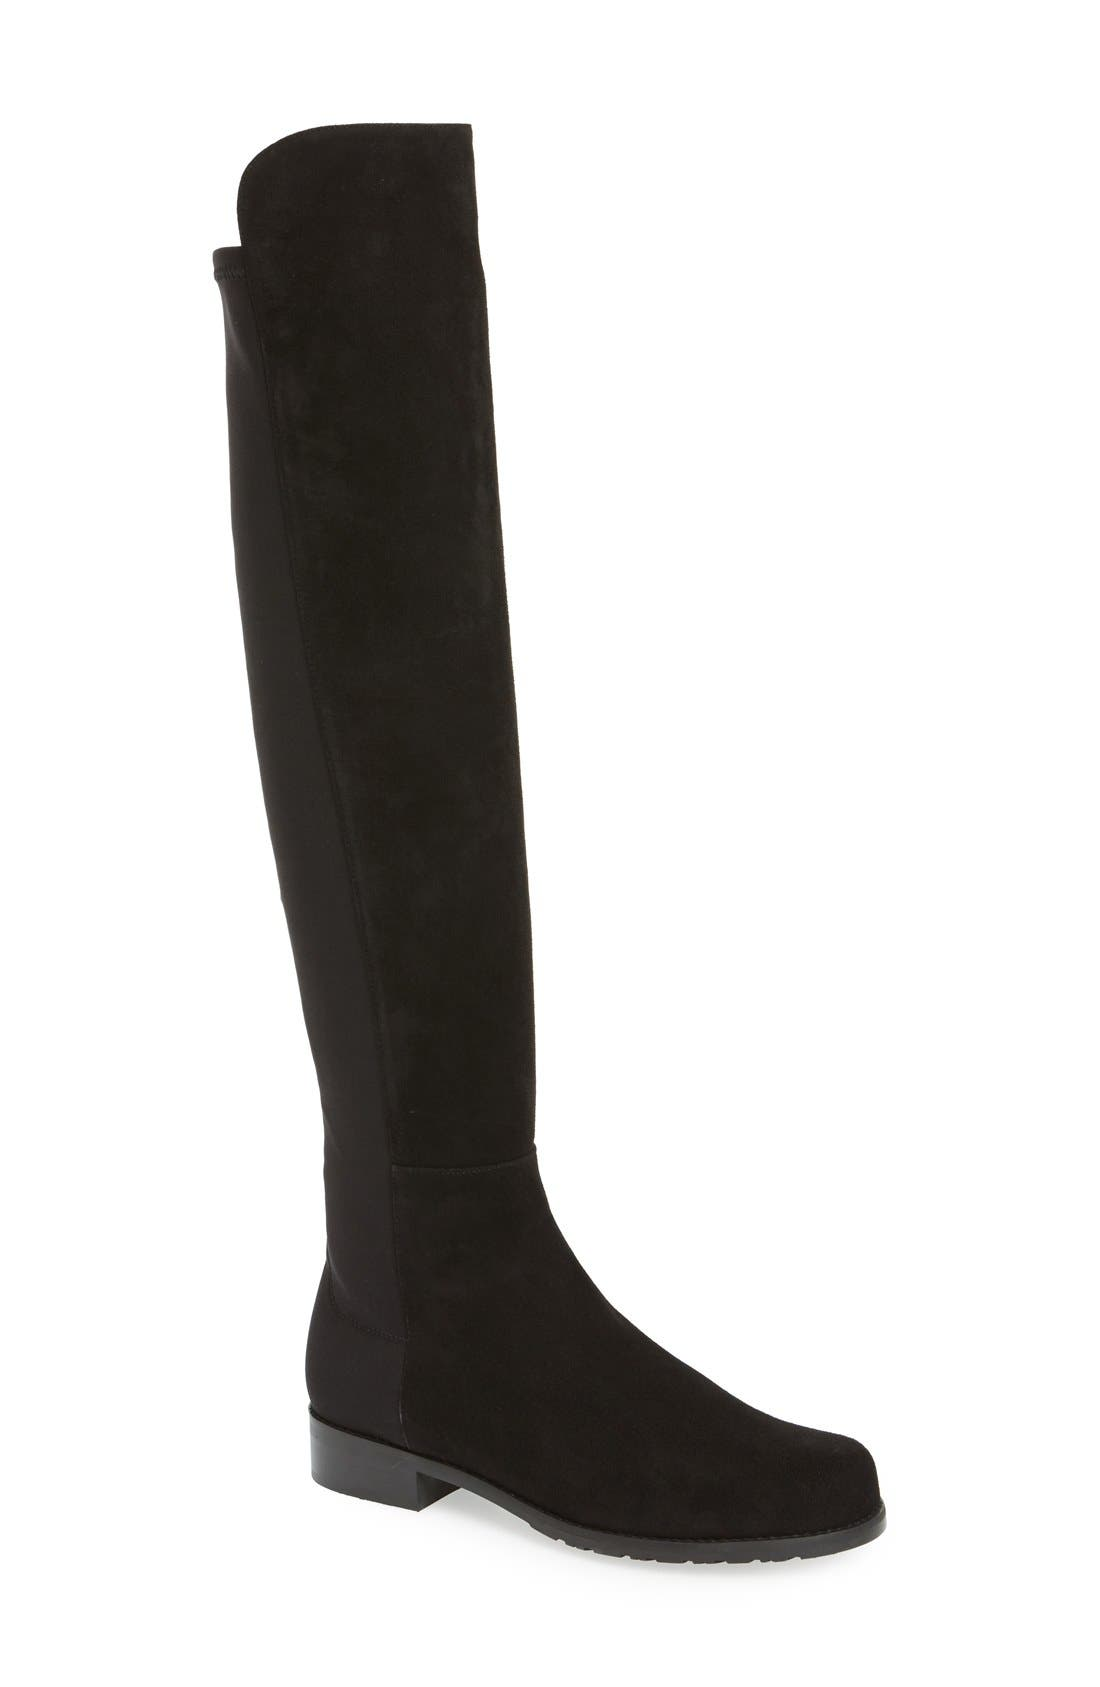 5050 Over the Knee Leather Boot, Main, color, 001